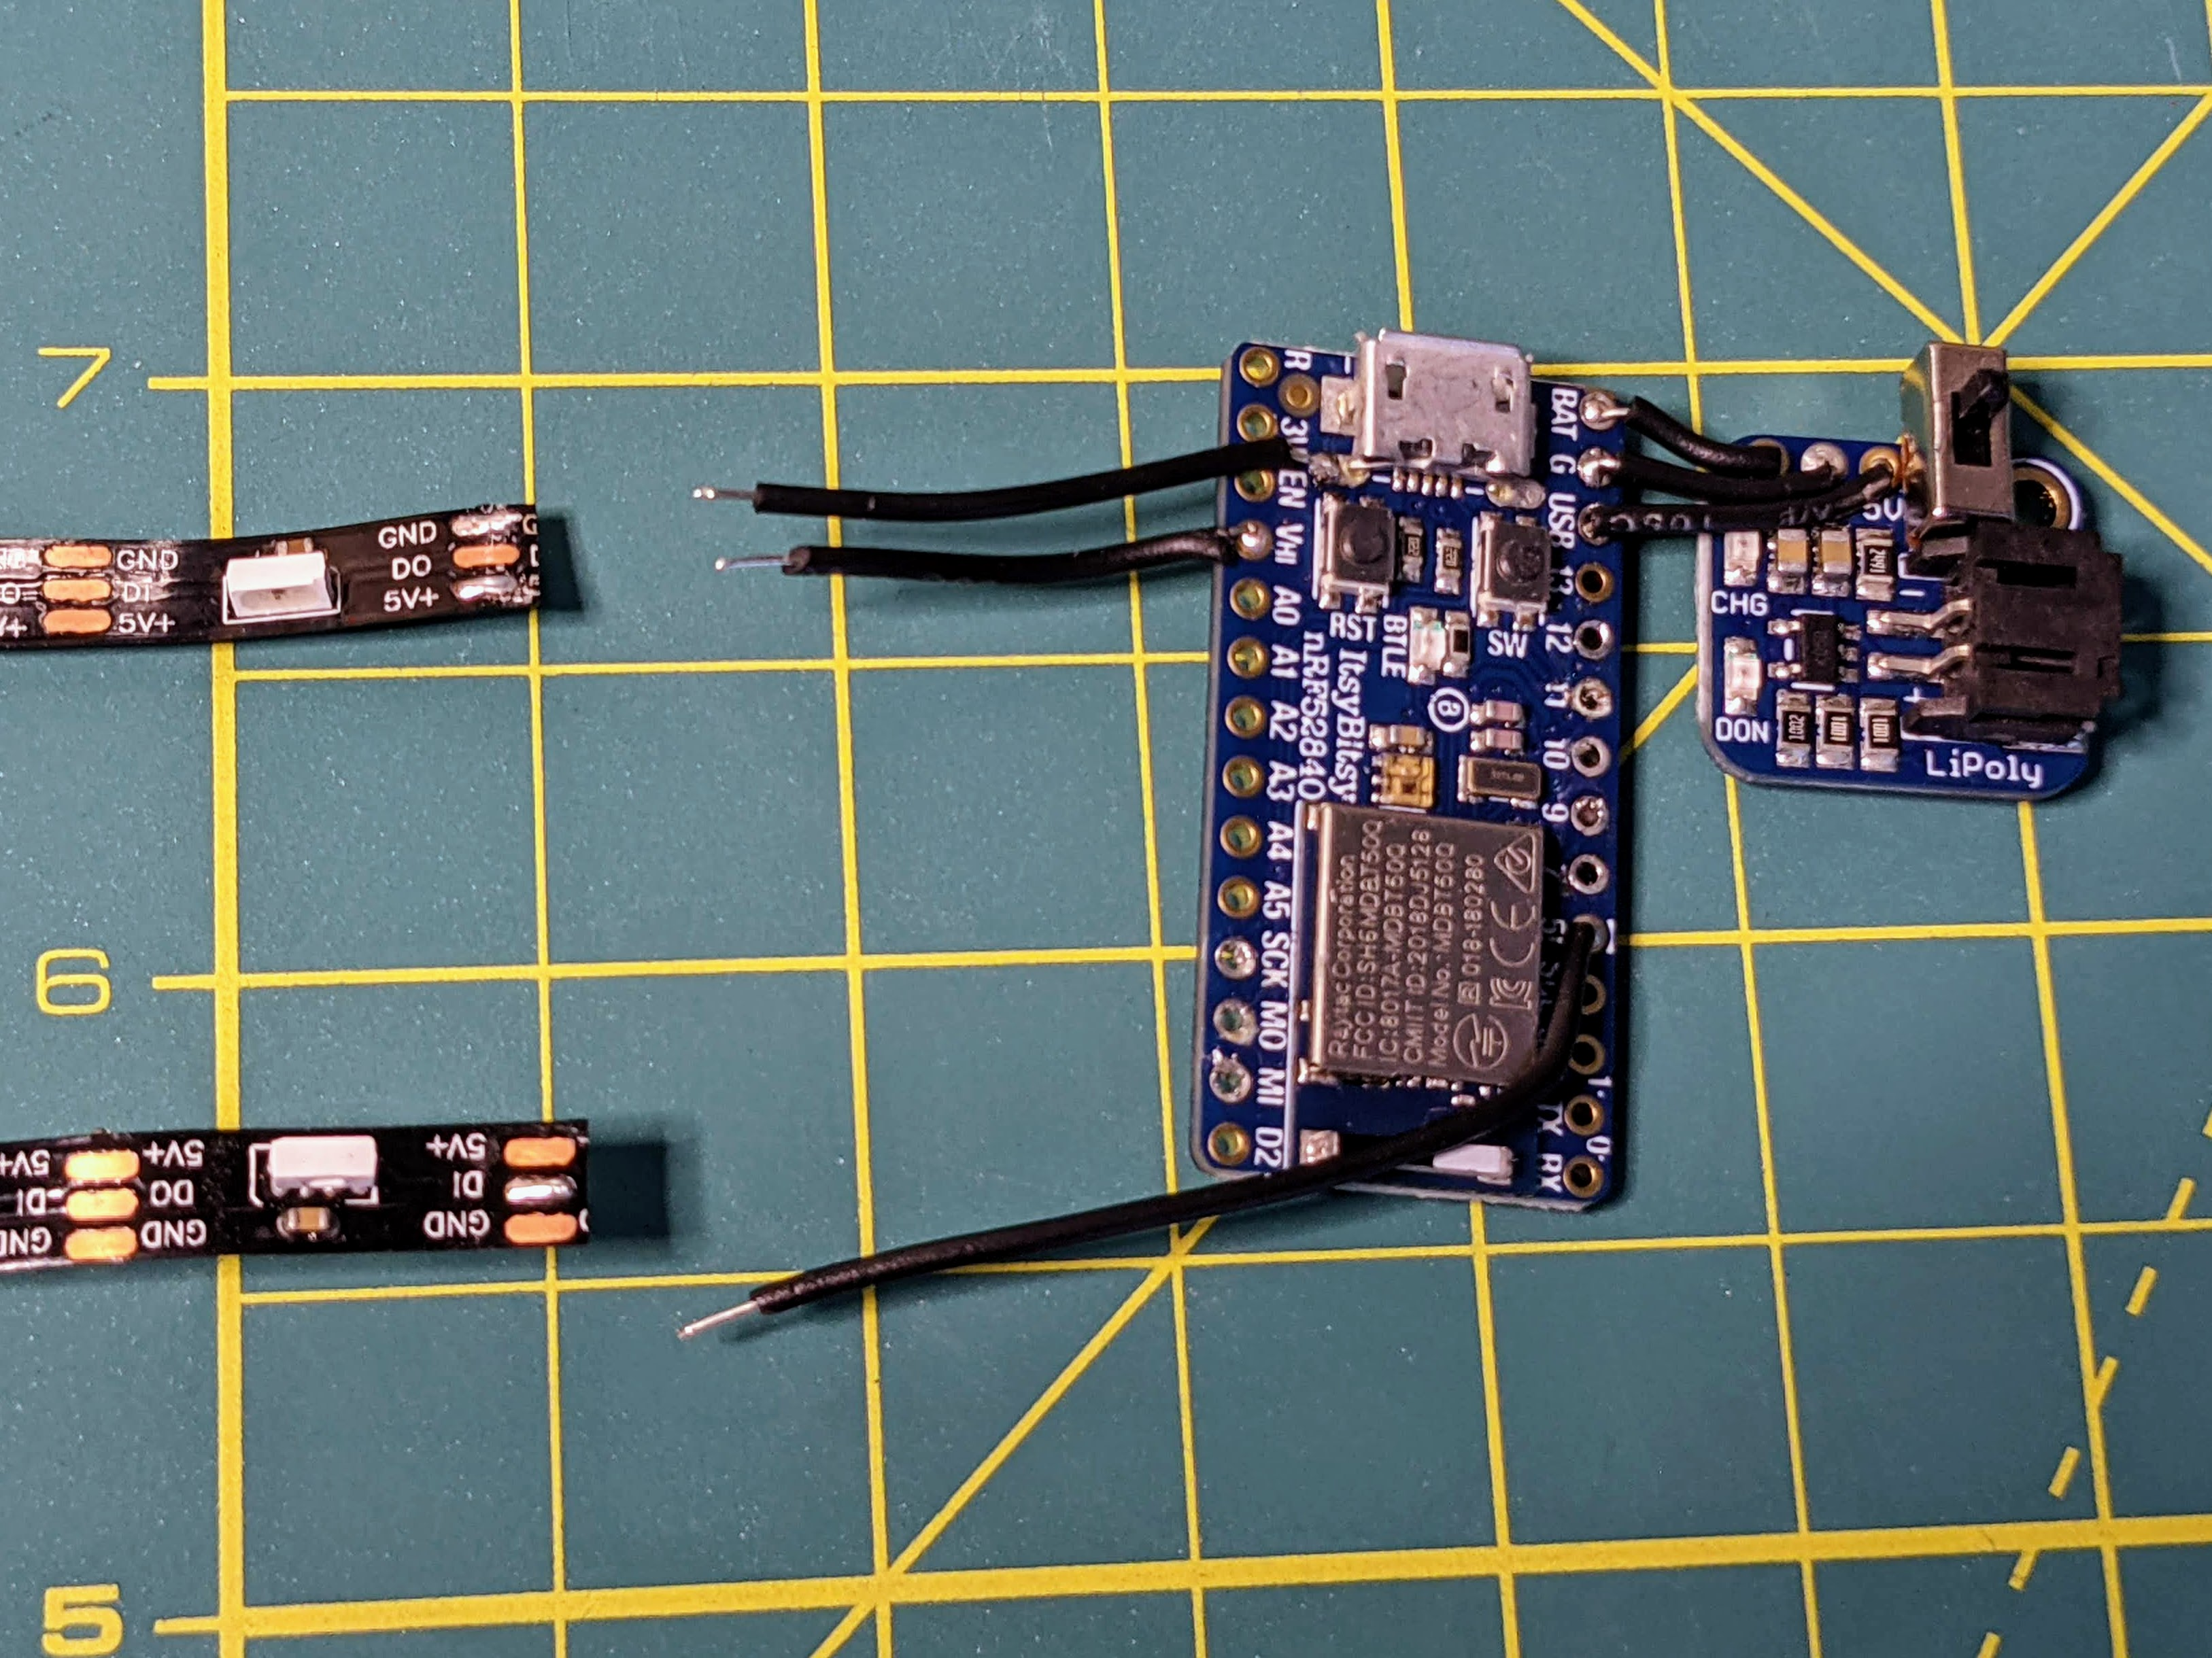 projects_led_strips_PXL_20210125_002331344.jpg